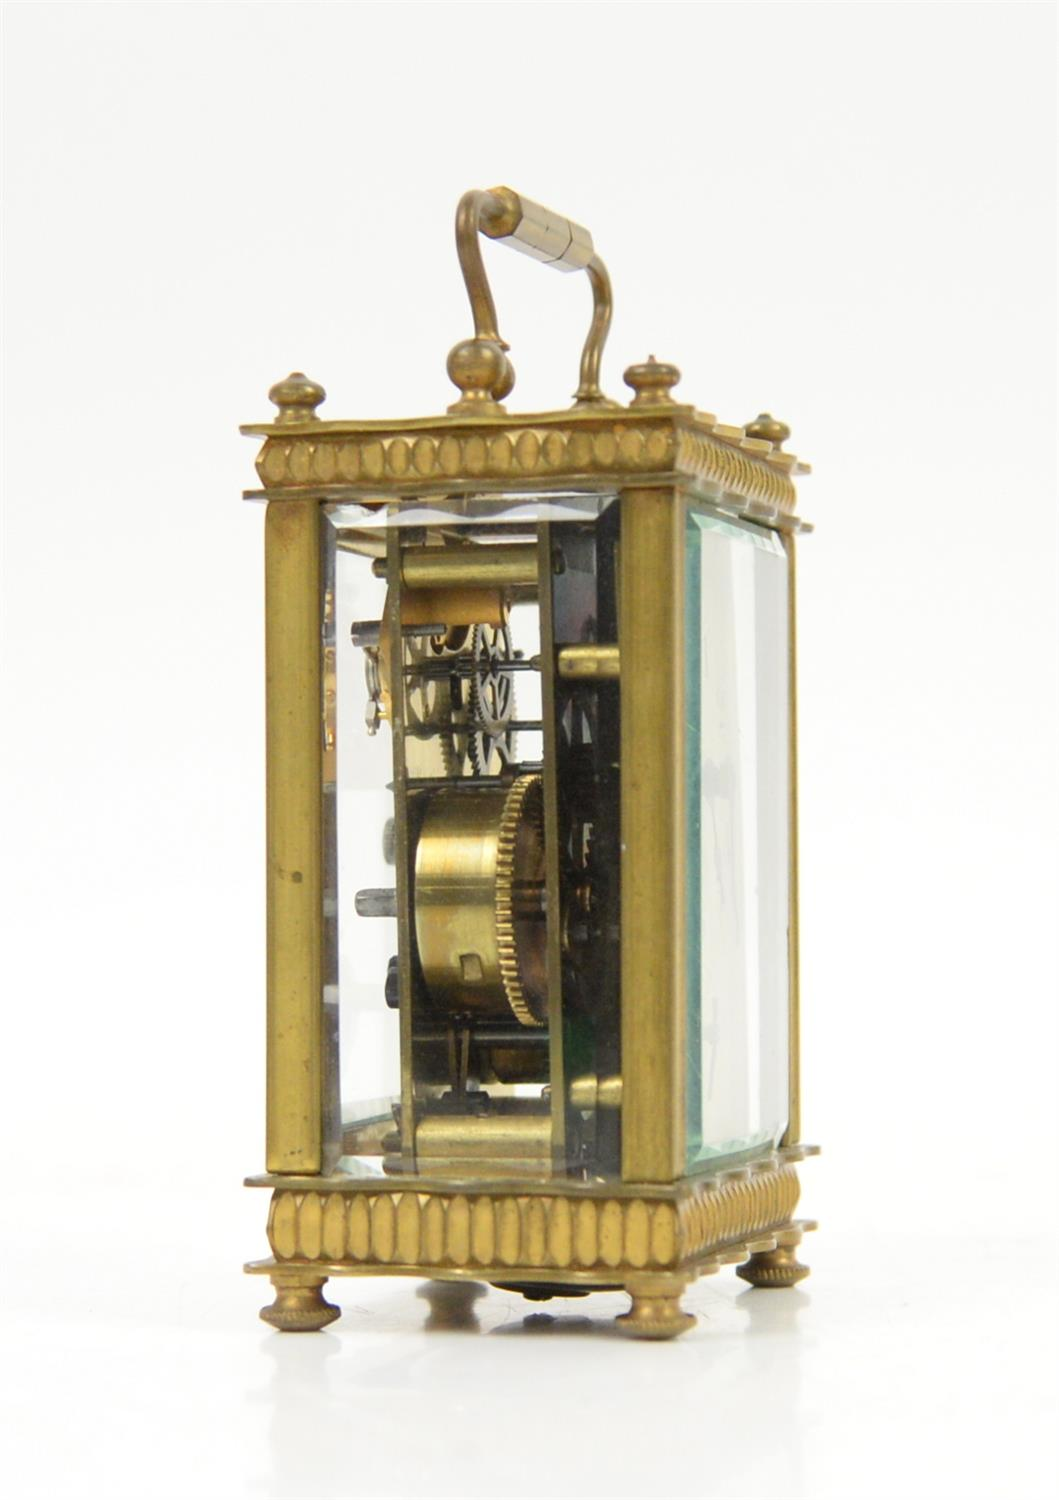 French brass carriage clock, the silvered dial with Arabic numerals and seconds subsidiary dial, - Image 2 of 5